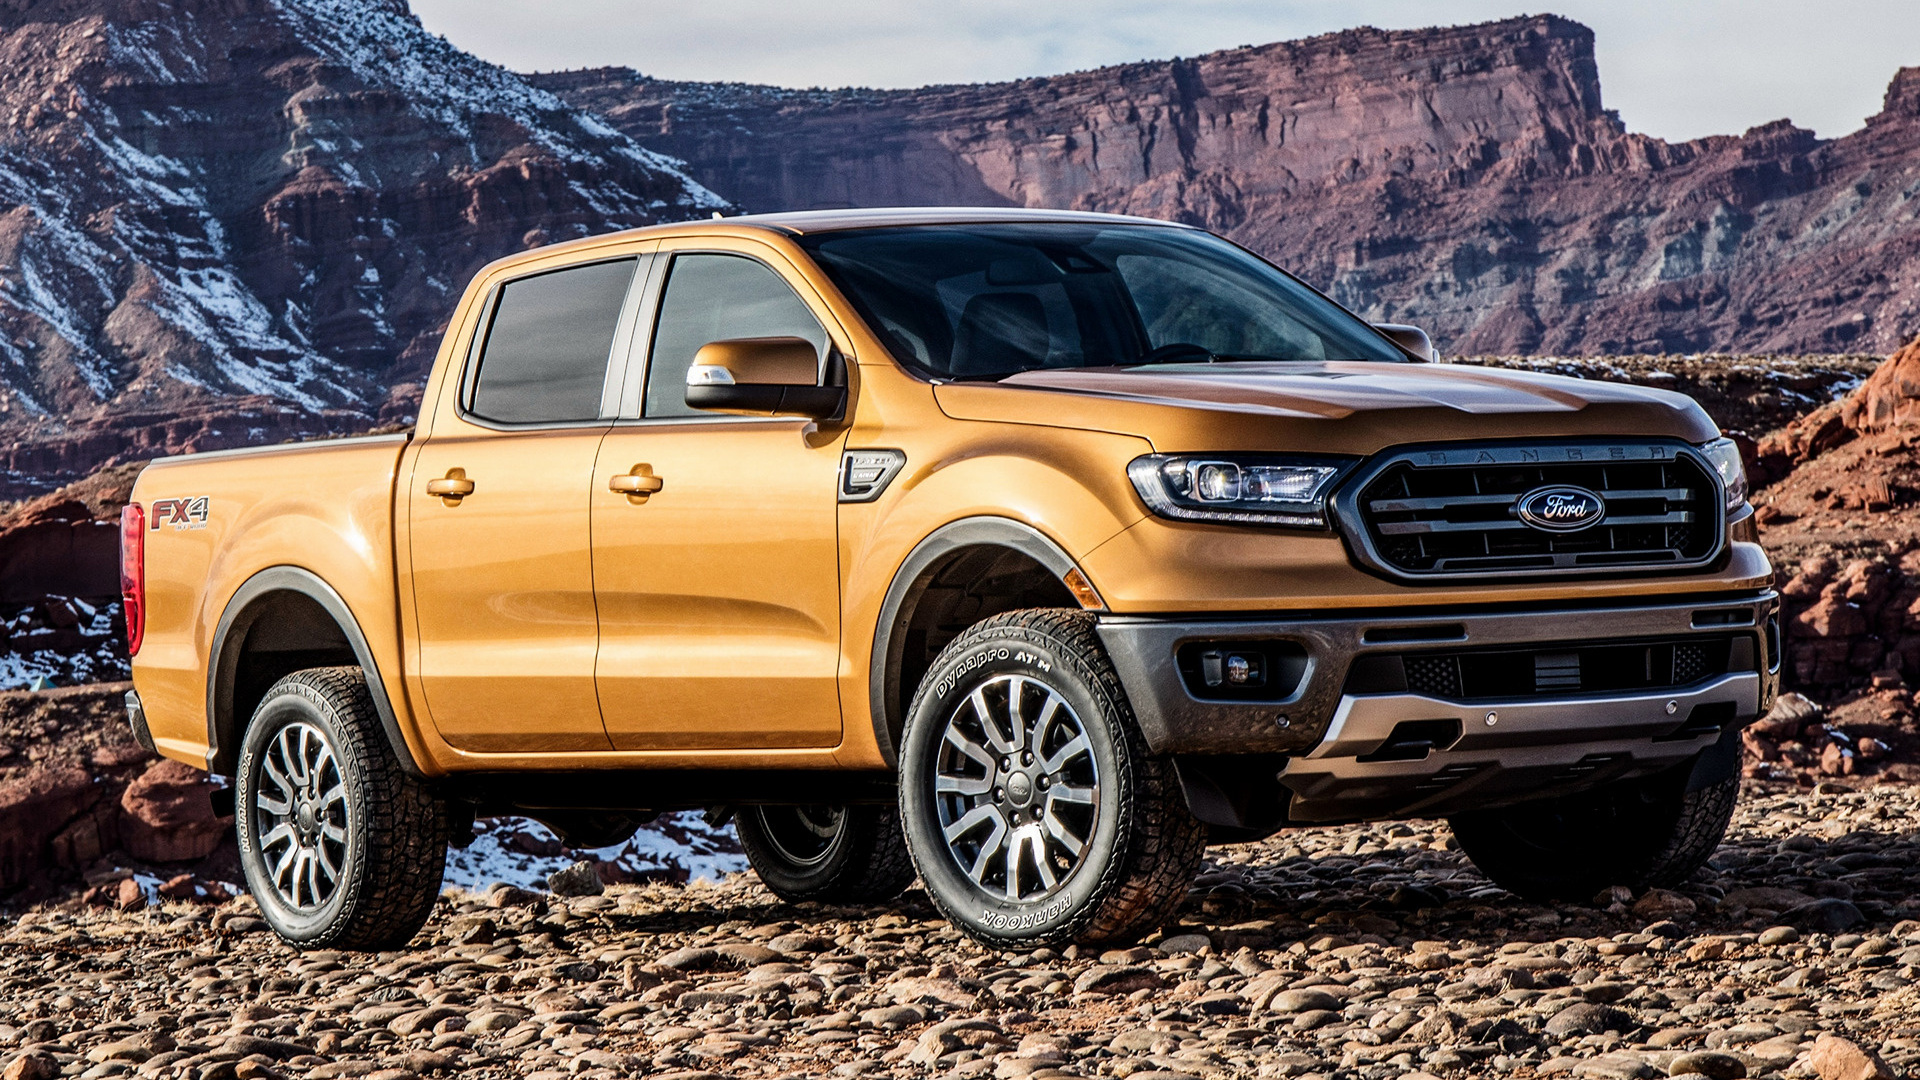 2019 Ford Ranger Lariat FX4 SuperCrew (US) - Wallpapers ...